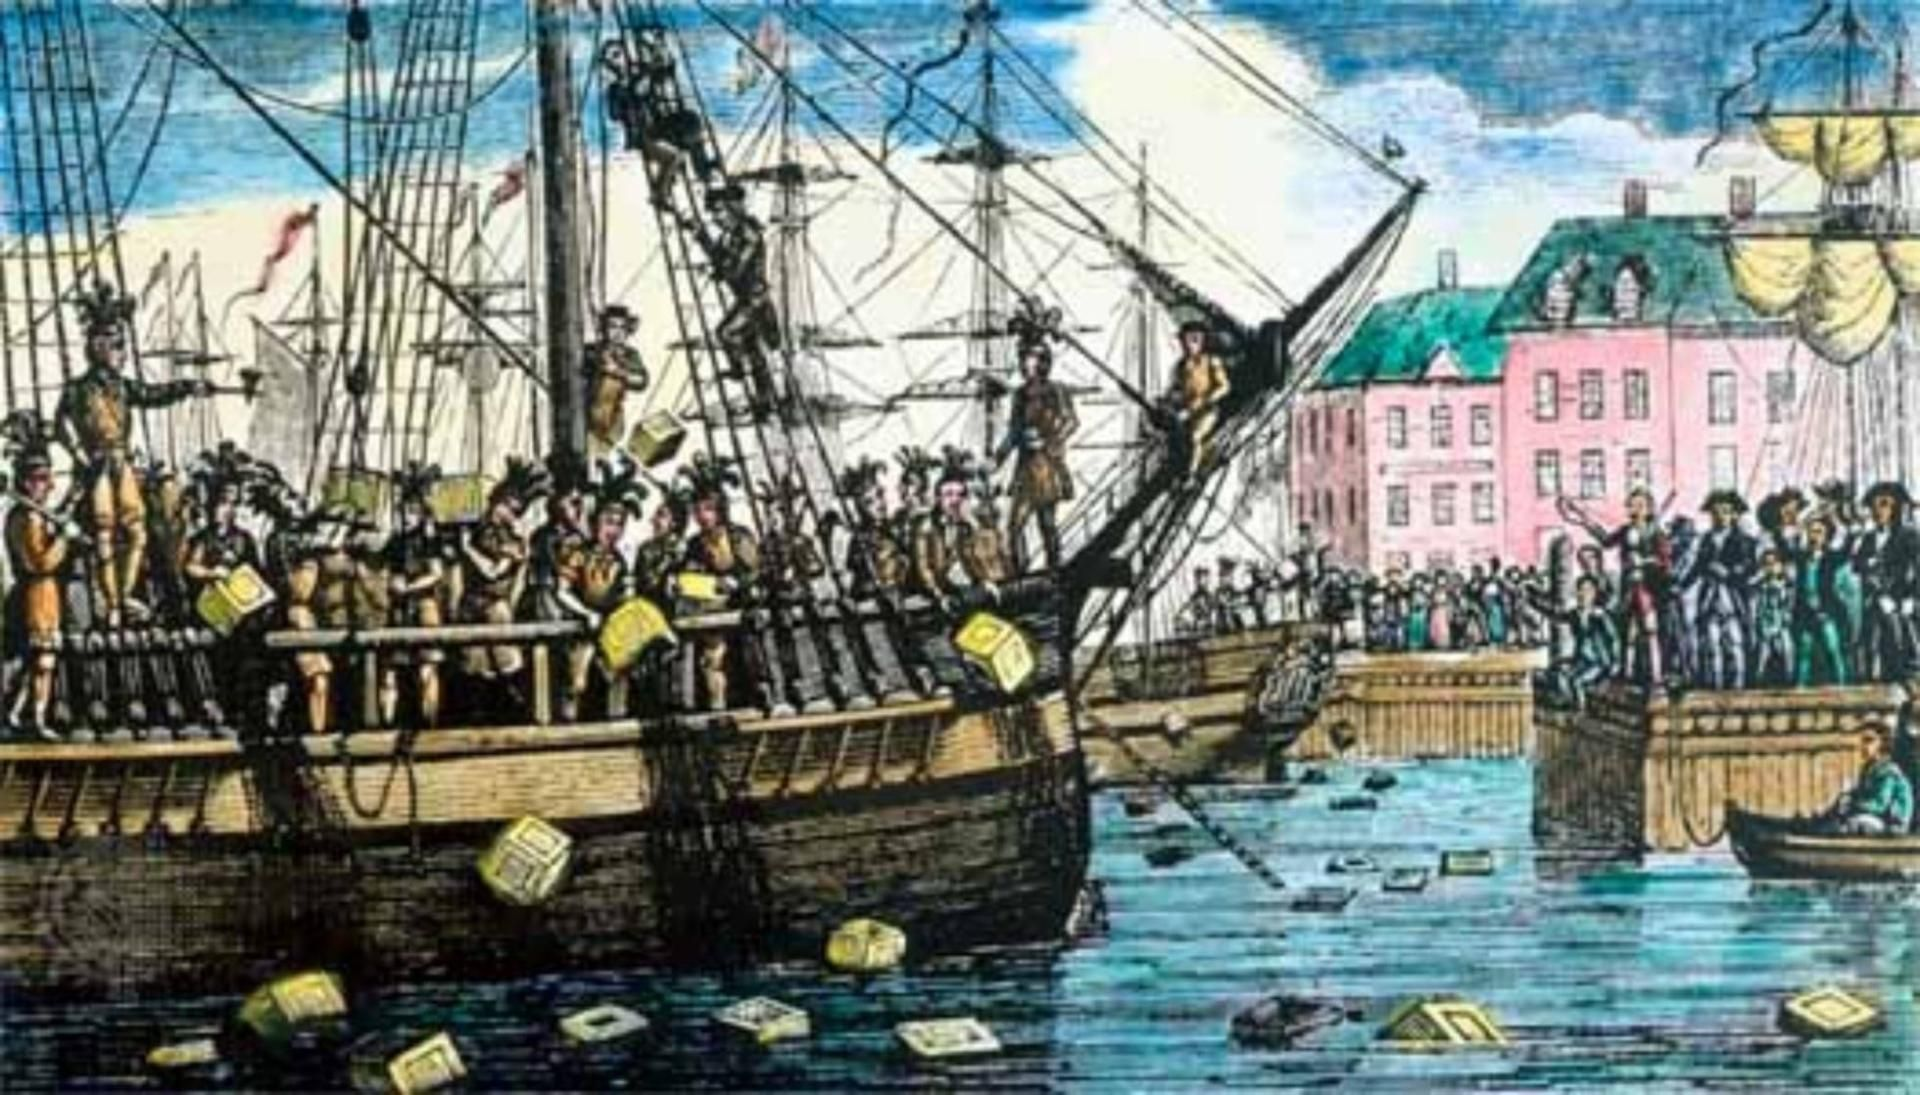 On the night of December 16, 1773, Samuel Adams and the Sons of Liberty boarded three ships in the Boston harbor and threw 342 chests of tea overboard. This resulted in the passage of the punitive Coercive Acts in 1774 and pushed the two sides closer to war.